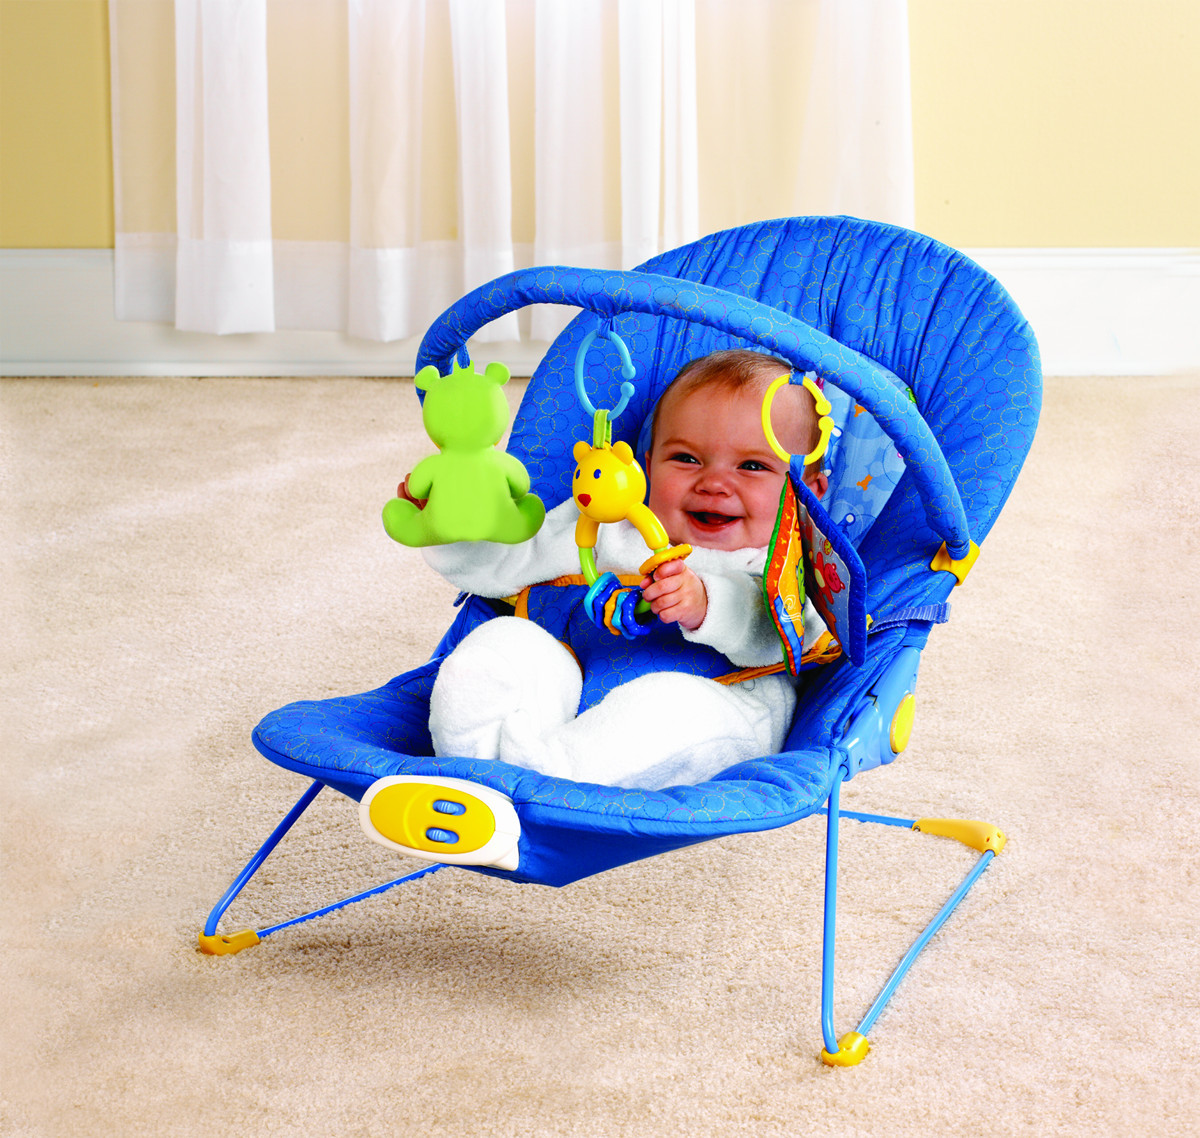 Baby Rocker Chair Multifunctional Baby Rocking Chair Inbouncers Jumpers